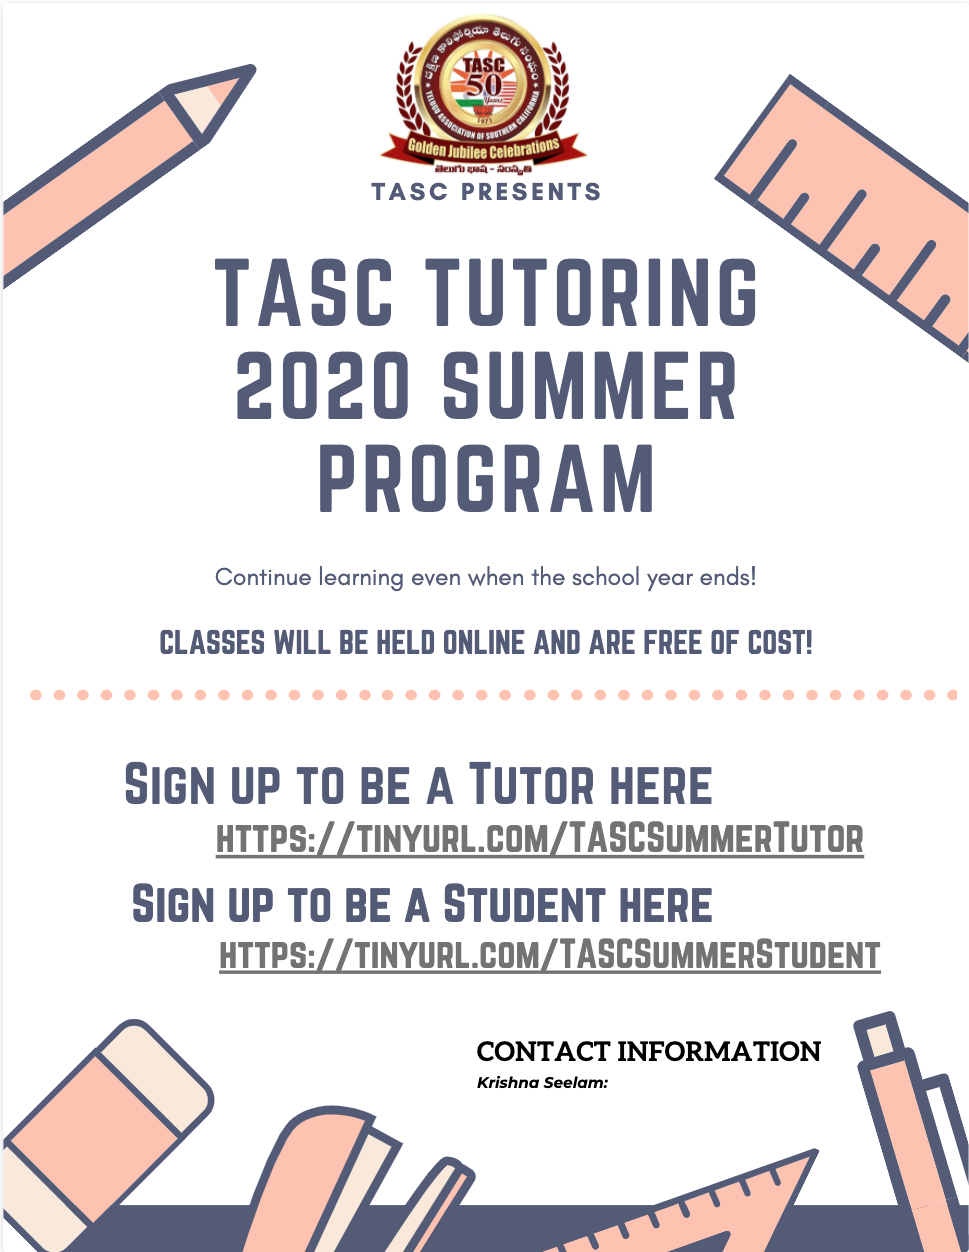 TASC TUTORING 2020 SUMMER PROGRAM